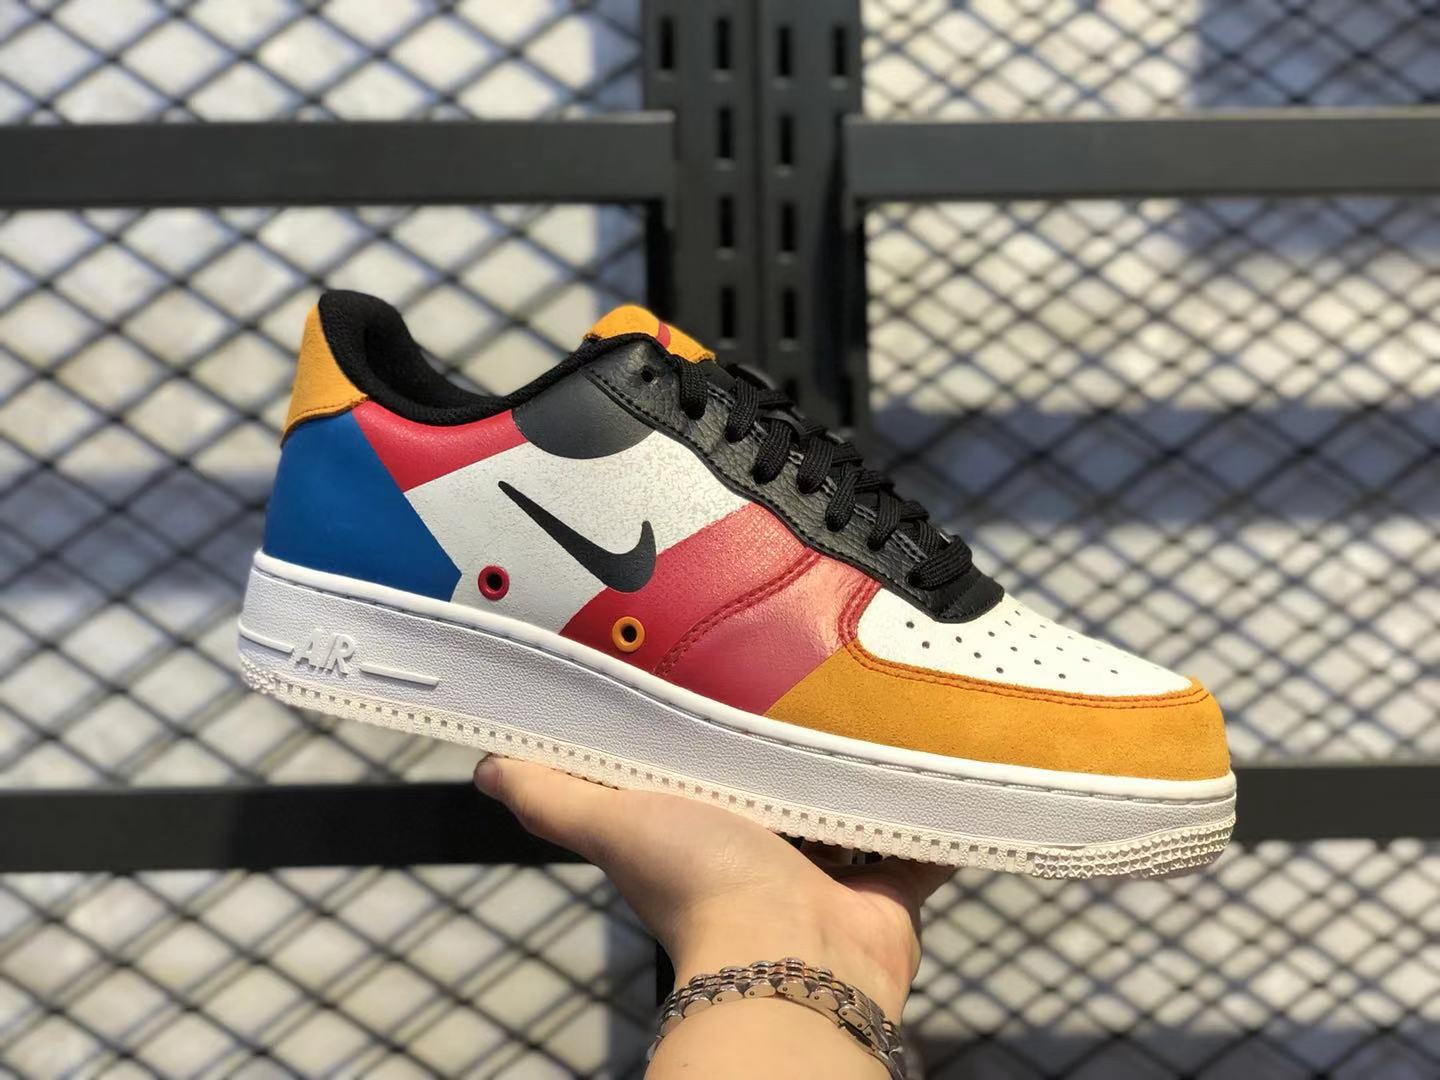 2020 High Quality Nike Air Force 1 Low Sail/Black-Imperial Blue-Amber Rise